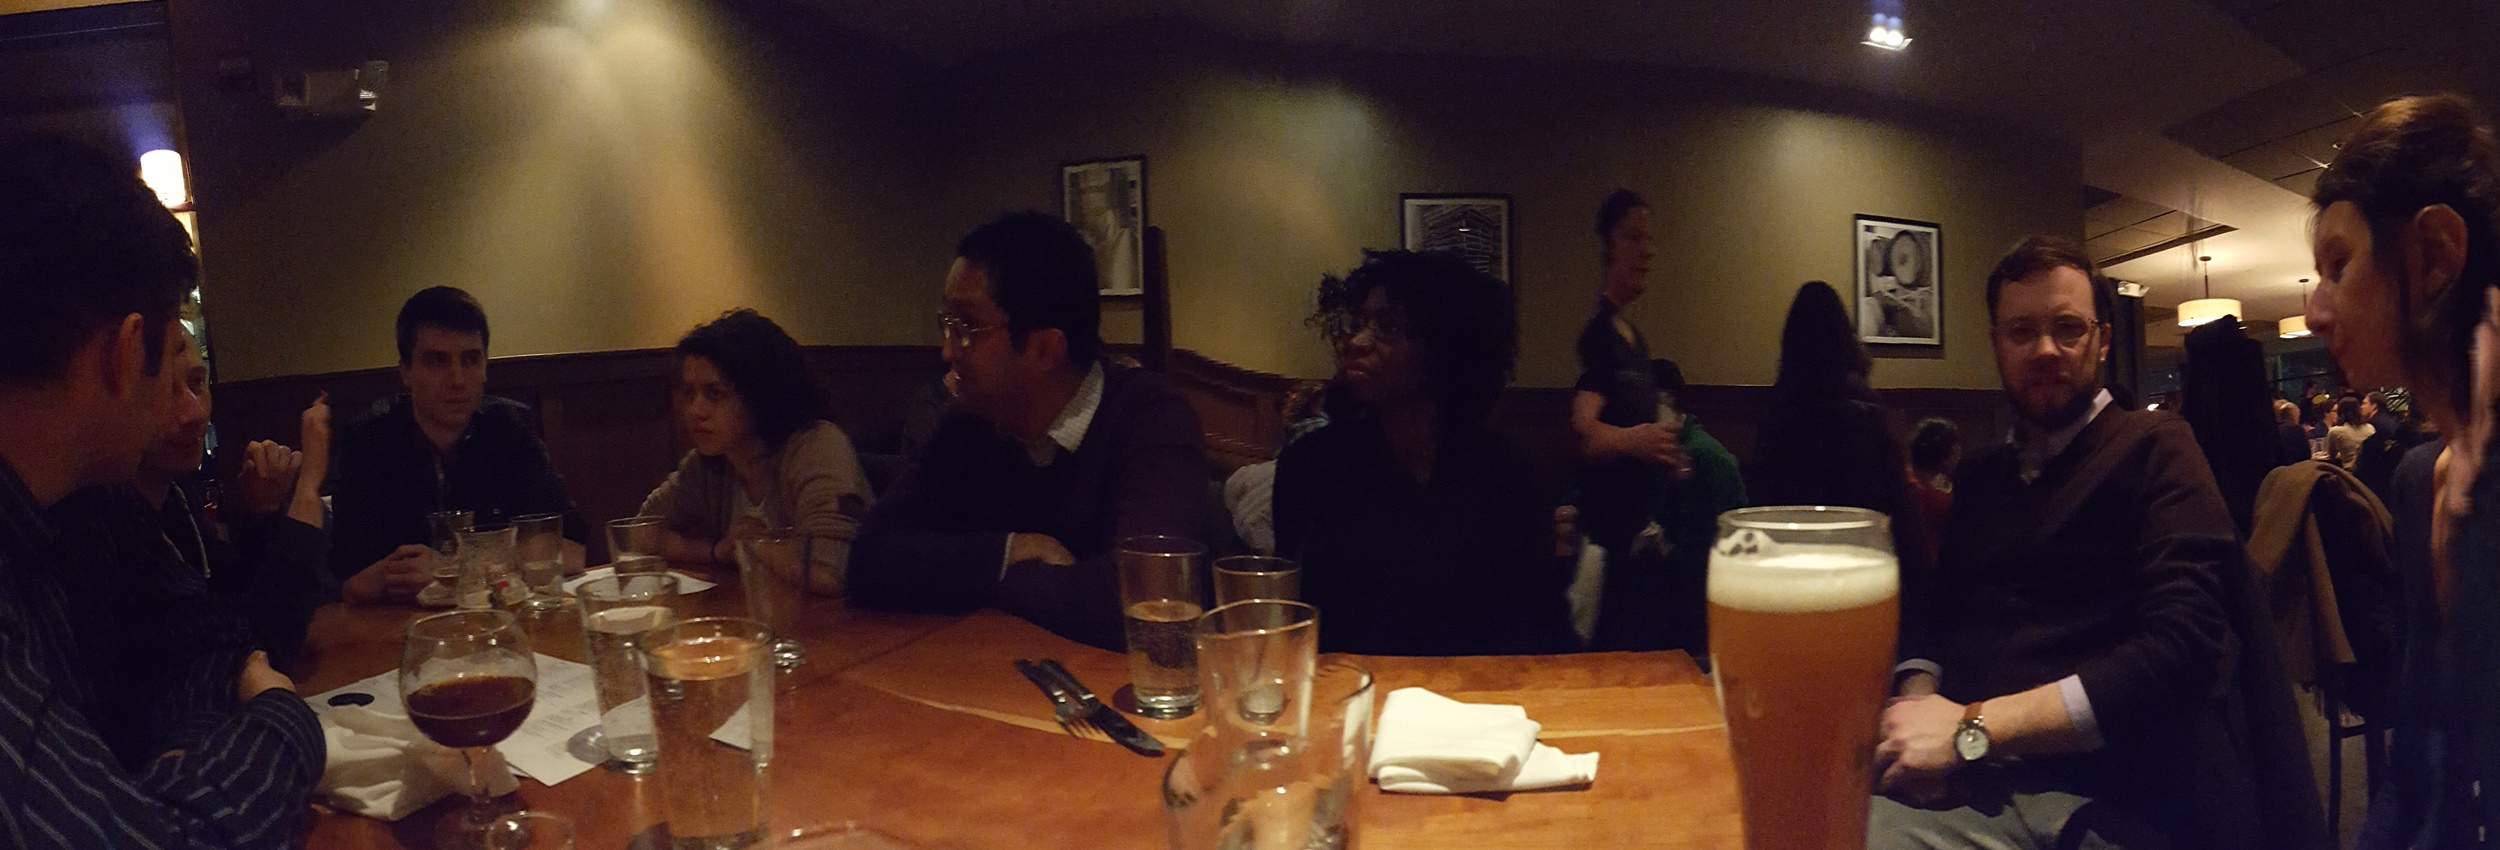 Mateo is testing out the panorama function on his phone with dubious results...